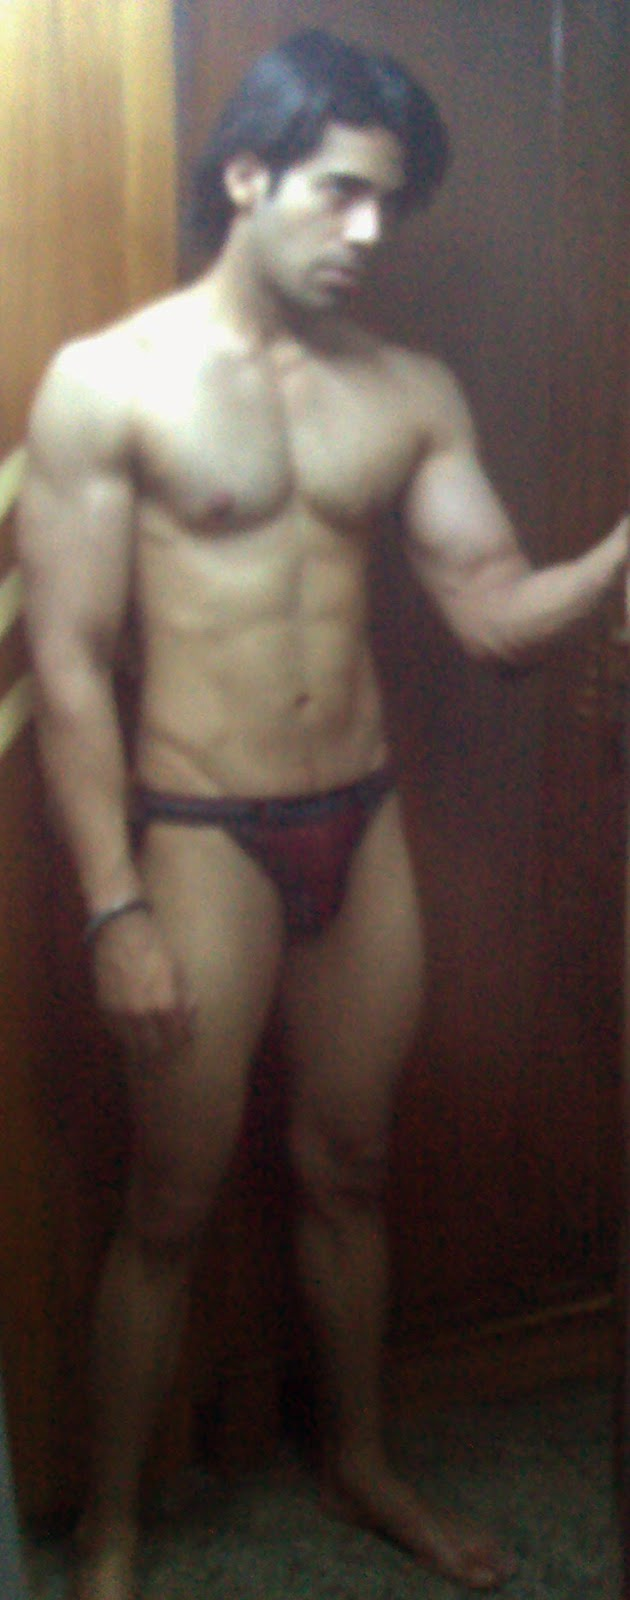 Desi Gay Desires: Share Your Pic - 19